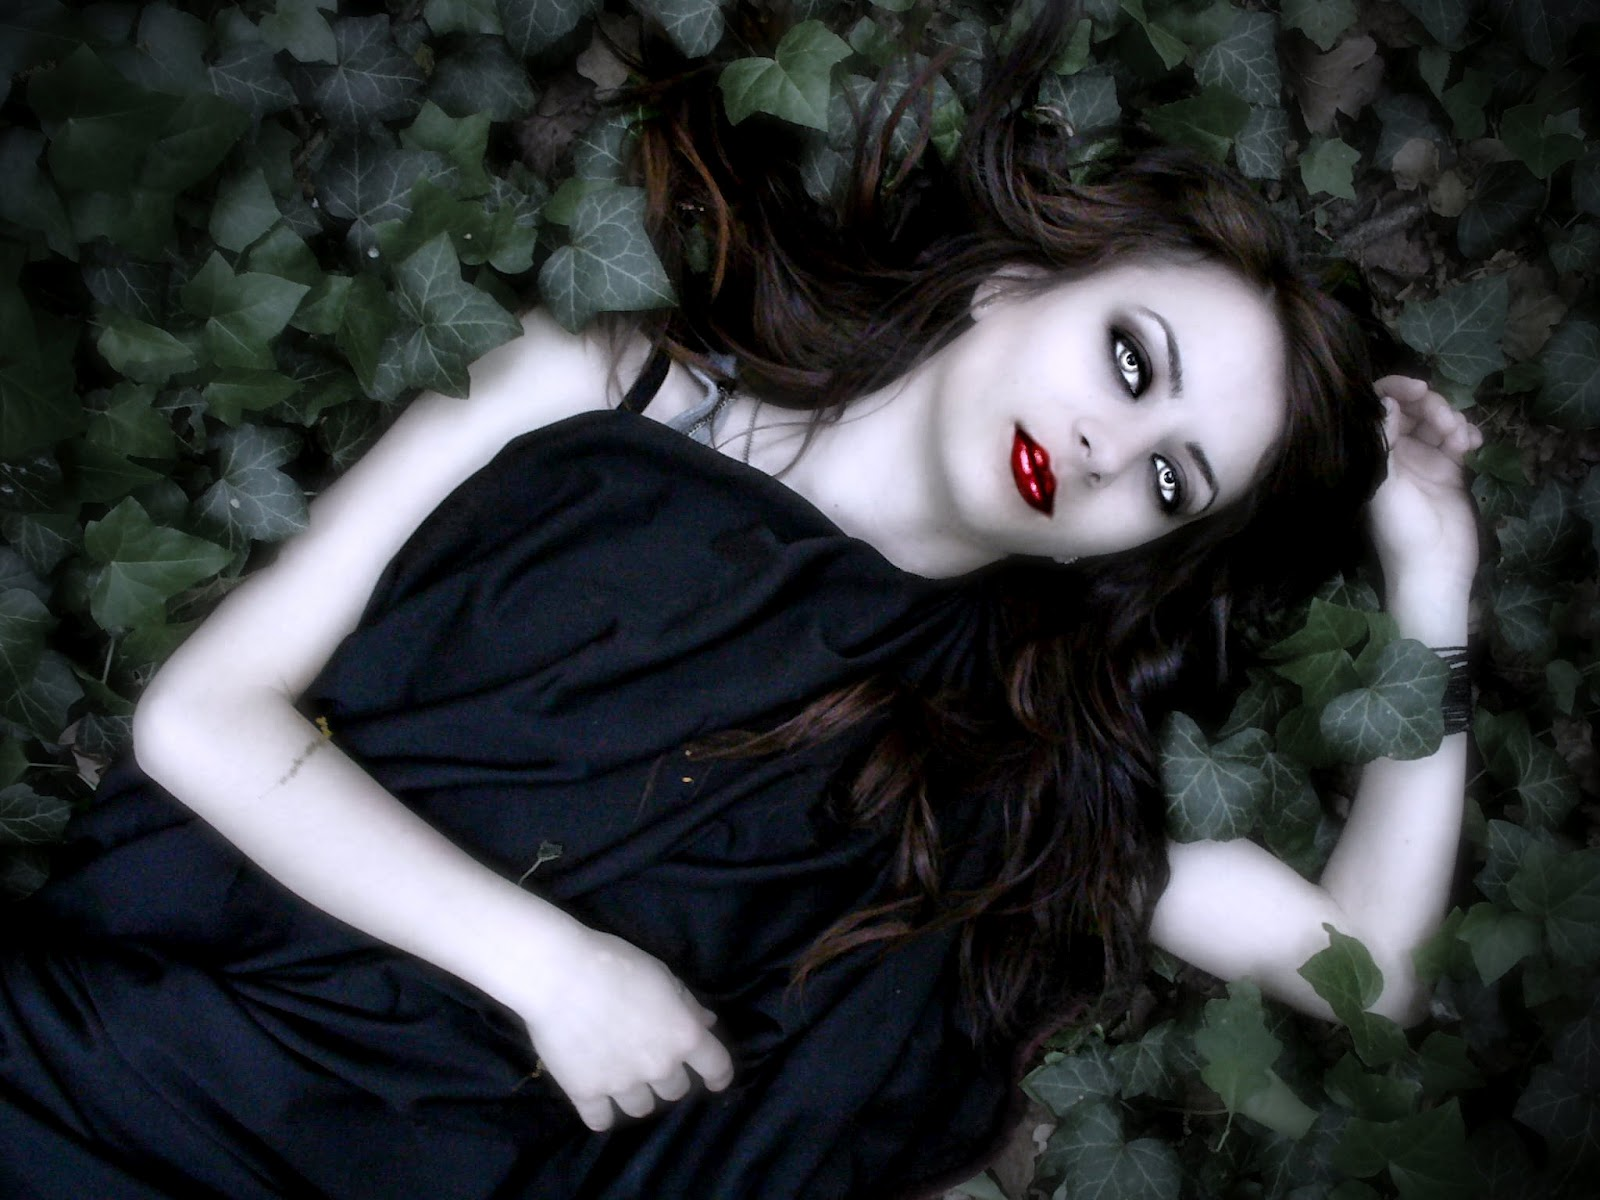 New Art Funny Wallpapers Jokes: Vampire Dark Girl ...